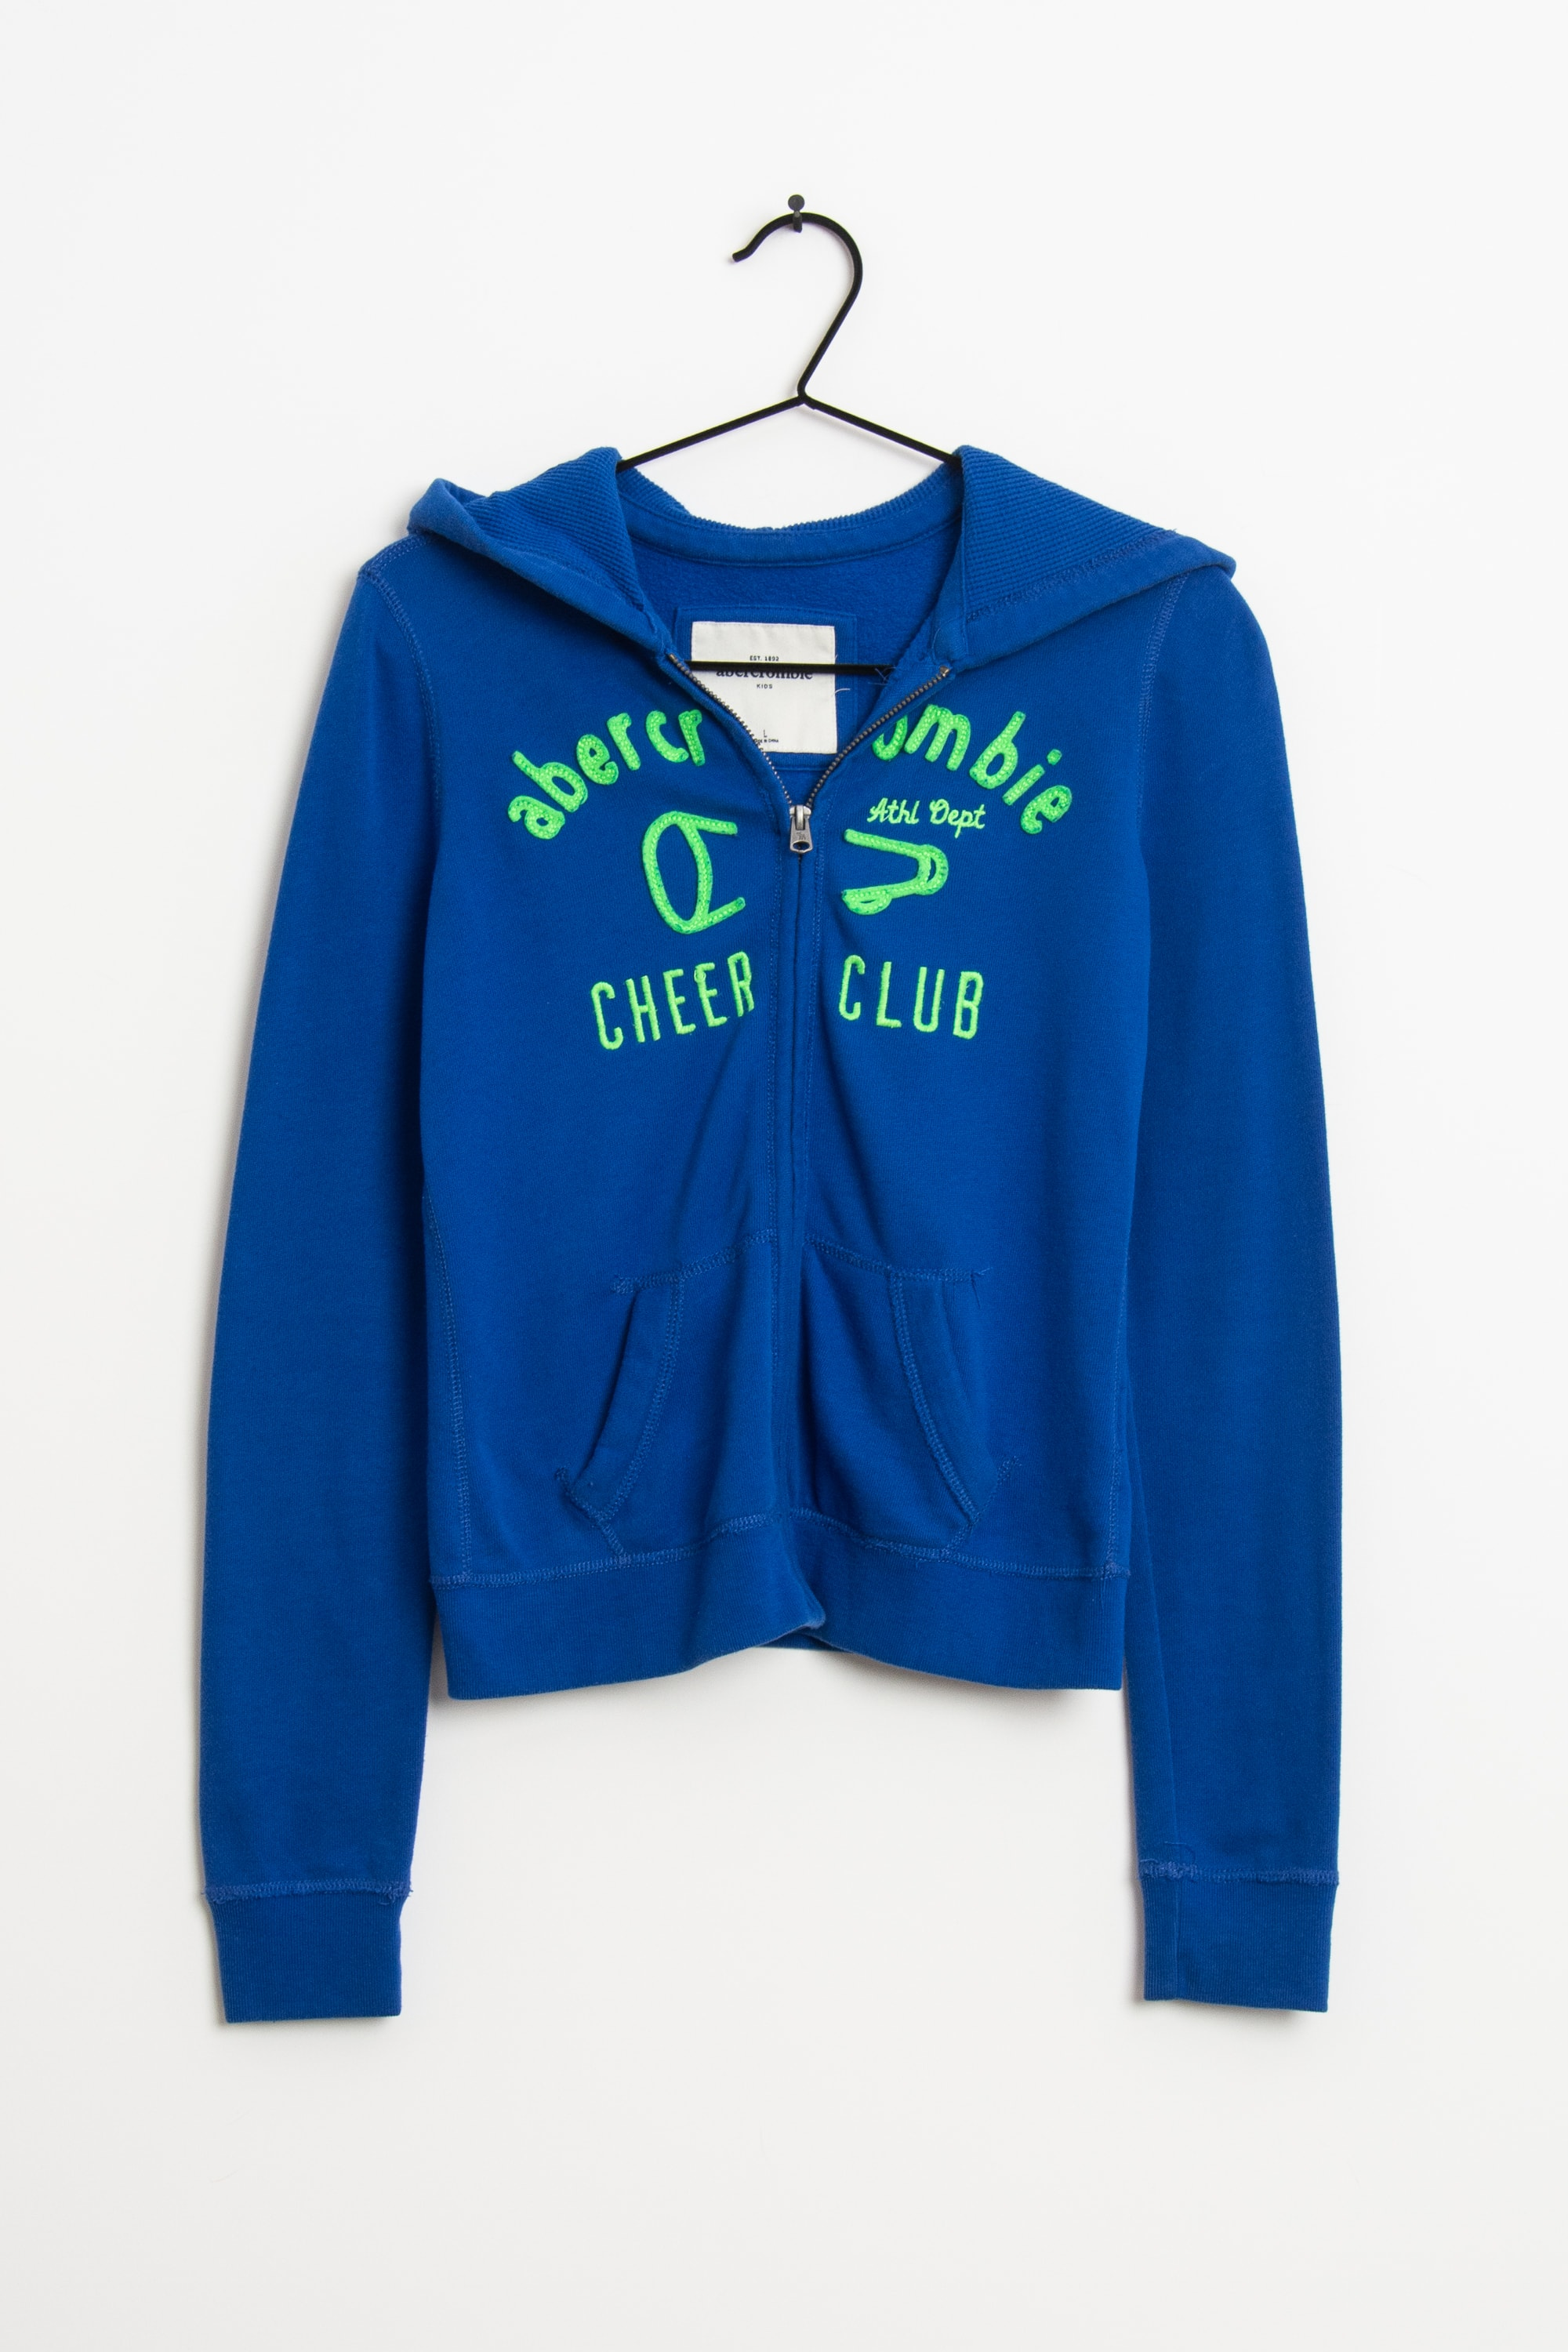 Abercrombie & Fitch Sweat / Fleece Blau Gr.S